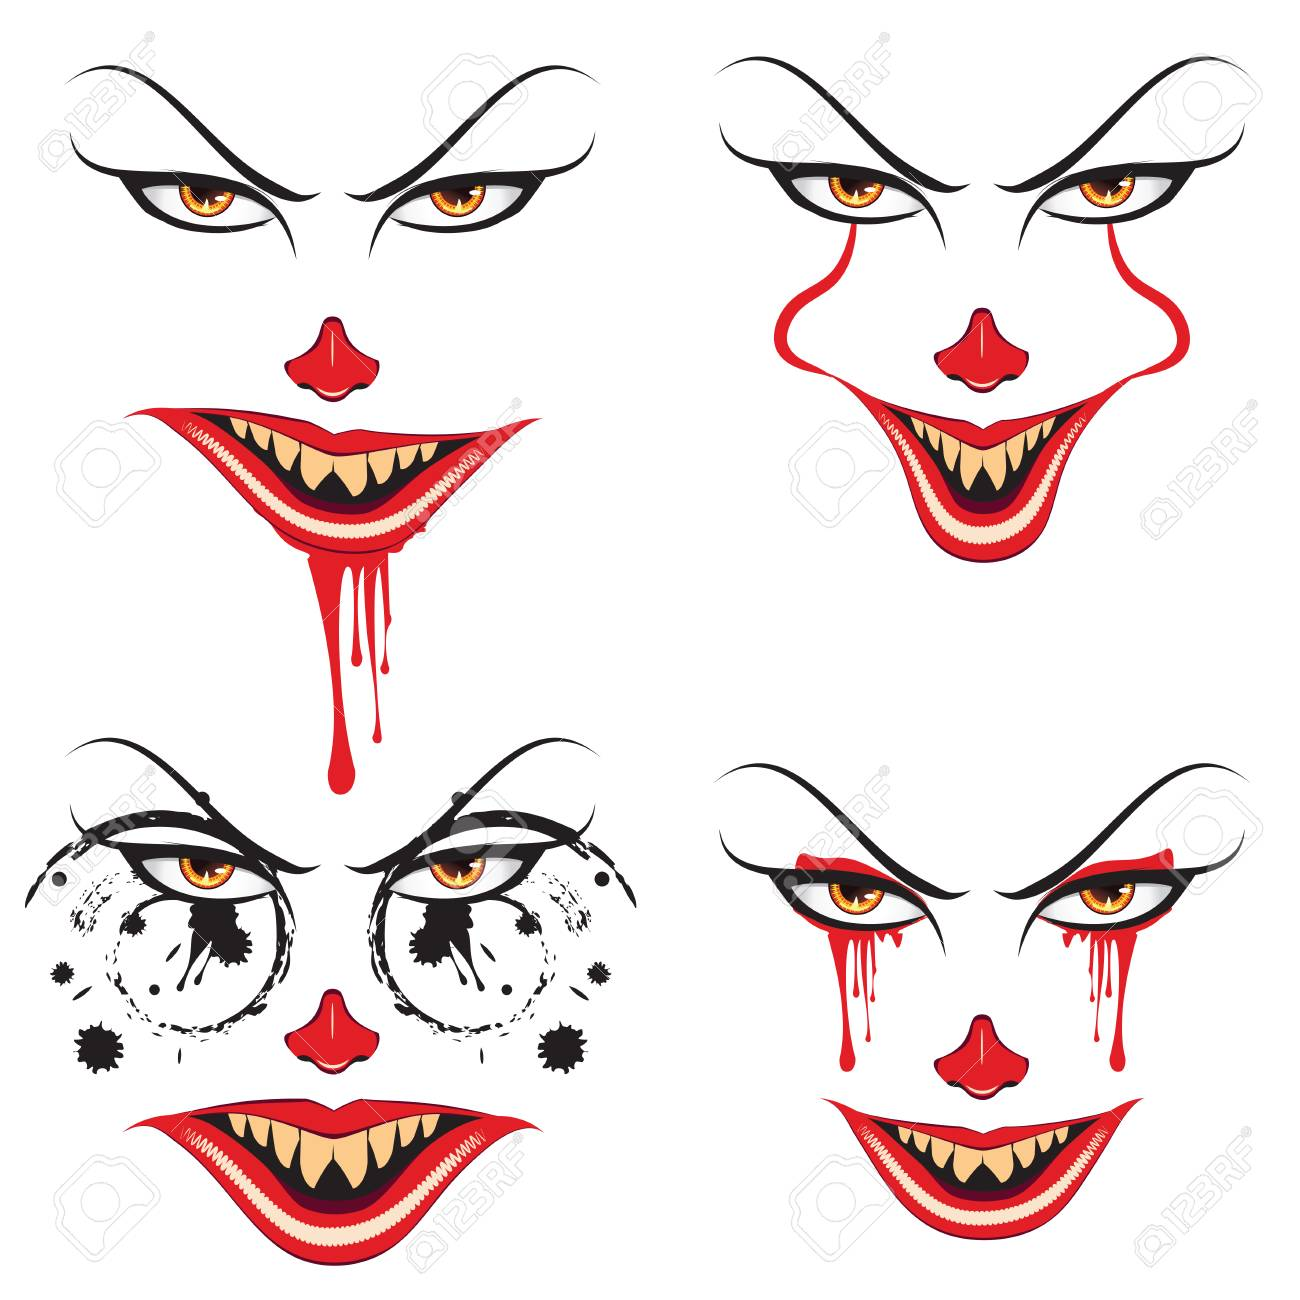 Dessin Visage Halloween.Cartoon Face With Creepy Make Up For Halloween Royalty Free Cliparts Vectors And Stock Illustration Image 88858028